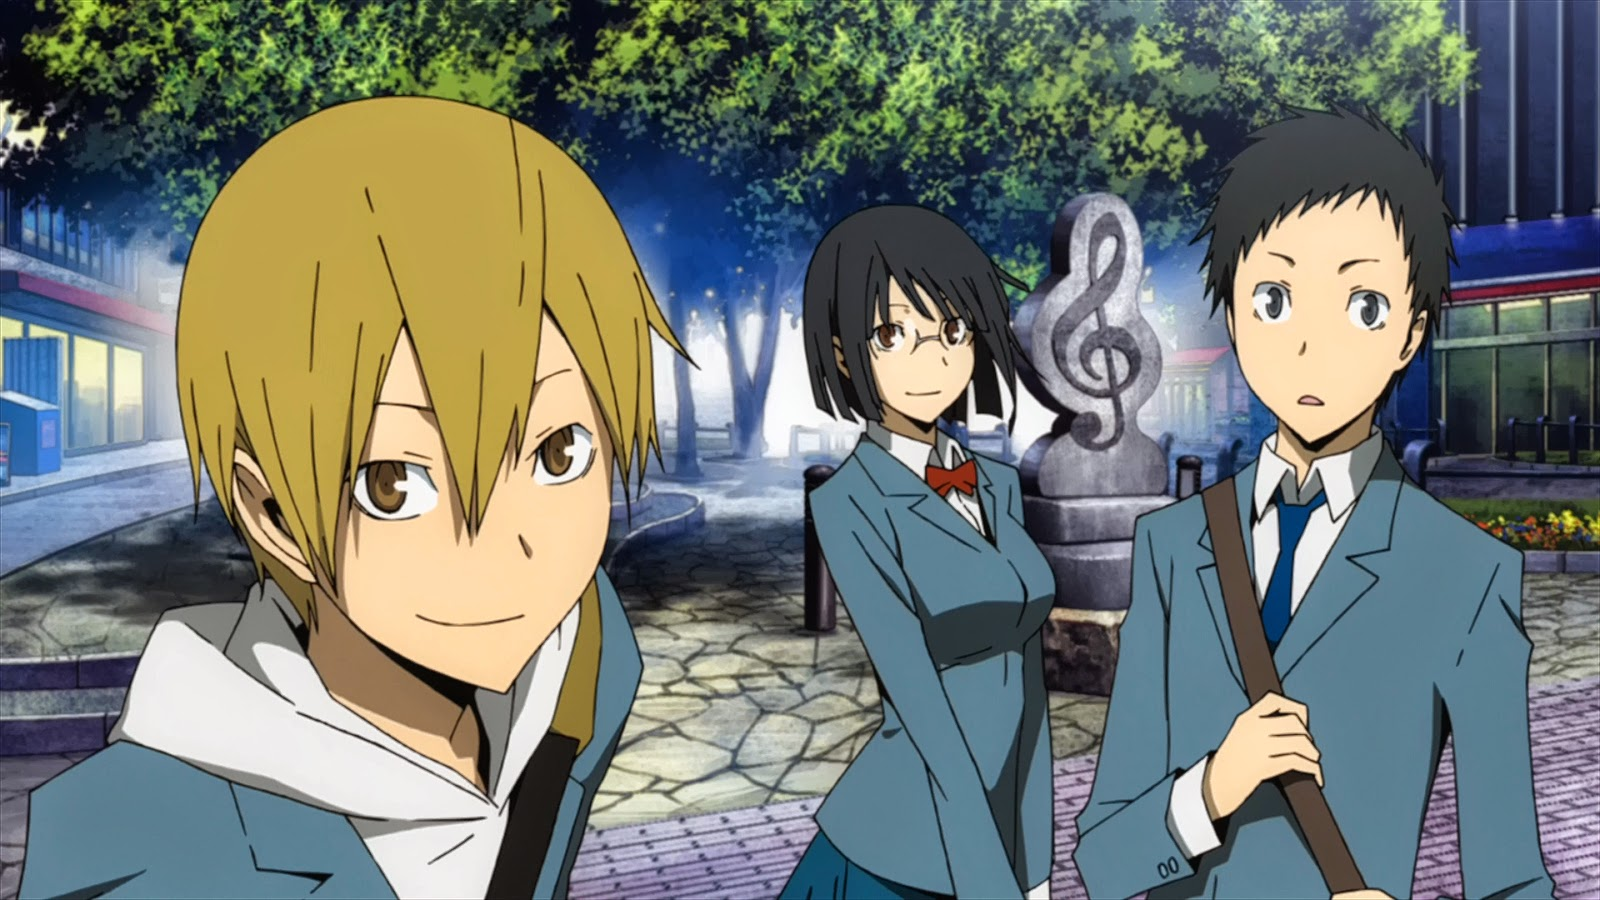 10,000 Anime Fans Voted for the Fictional Schools They Want to Study At haruhichan.com Raira Academy Durarara